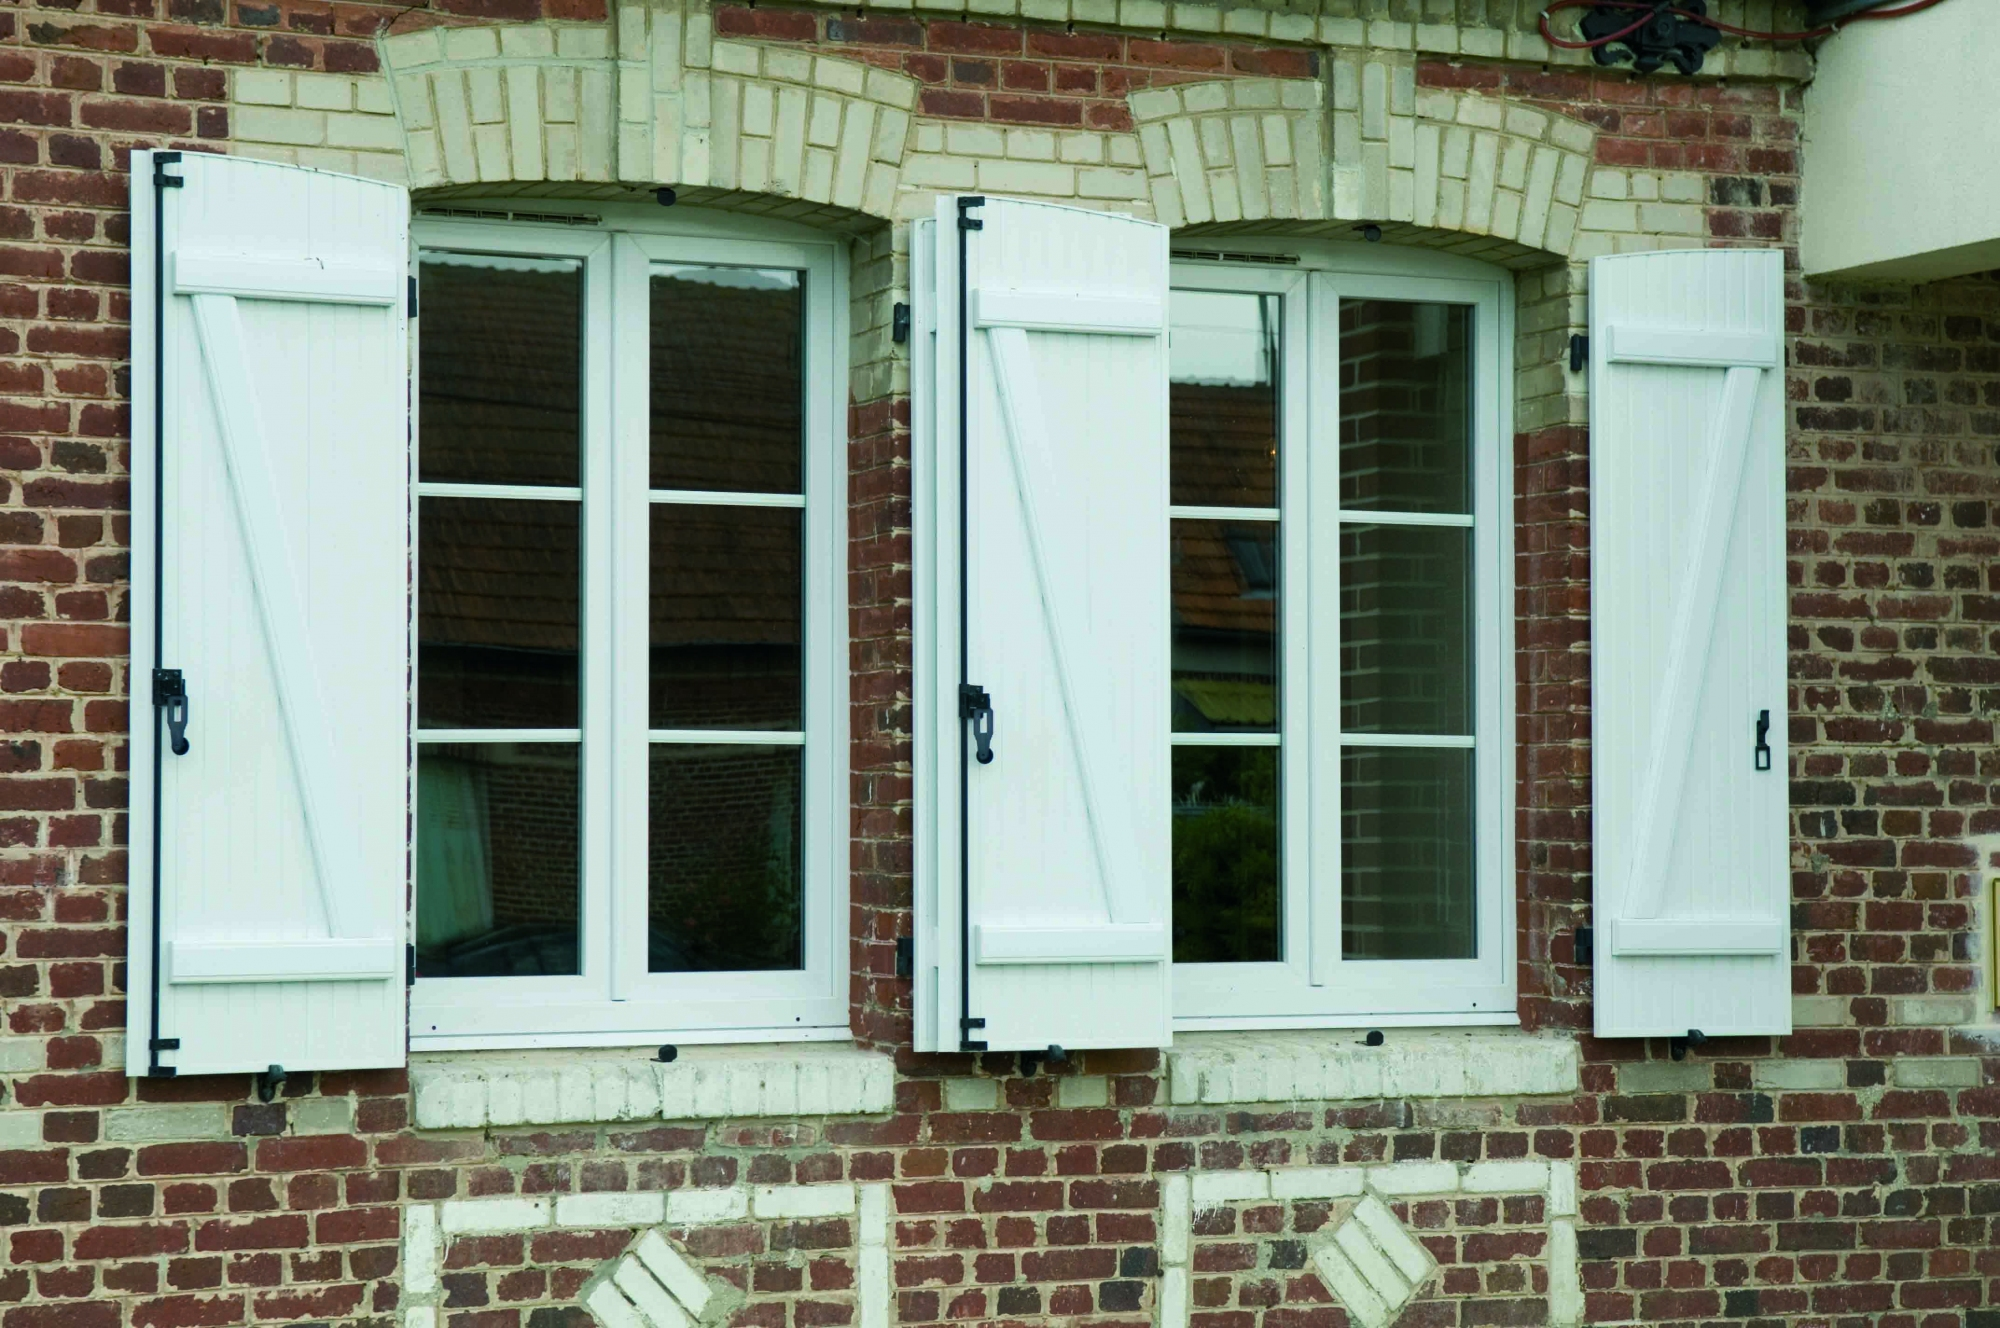 Fenetre renovation sur mesure for Fenetre en pvc blanc